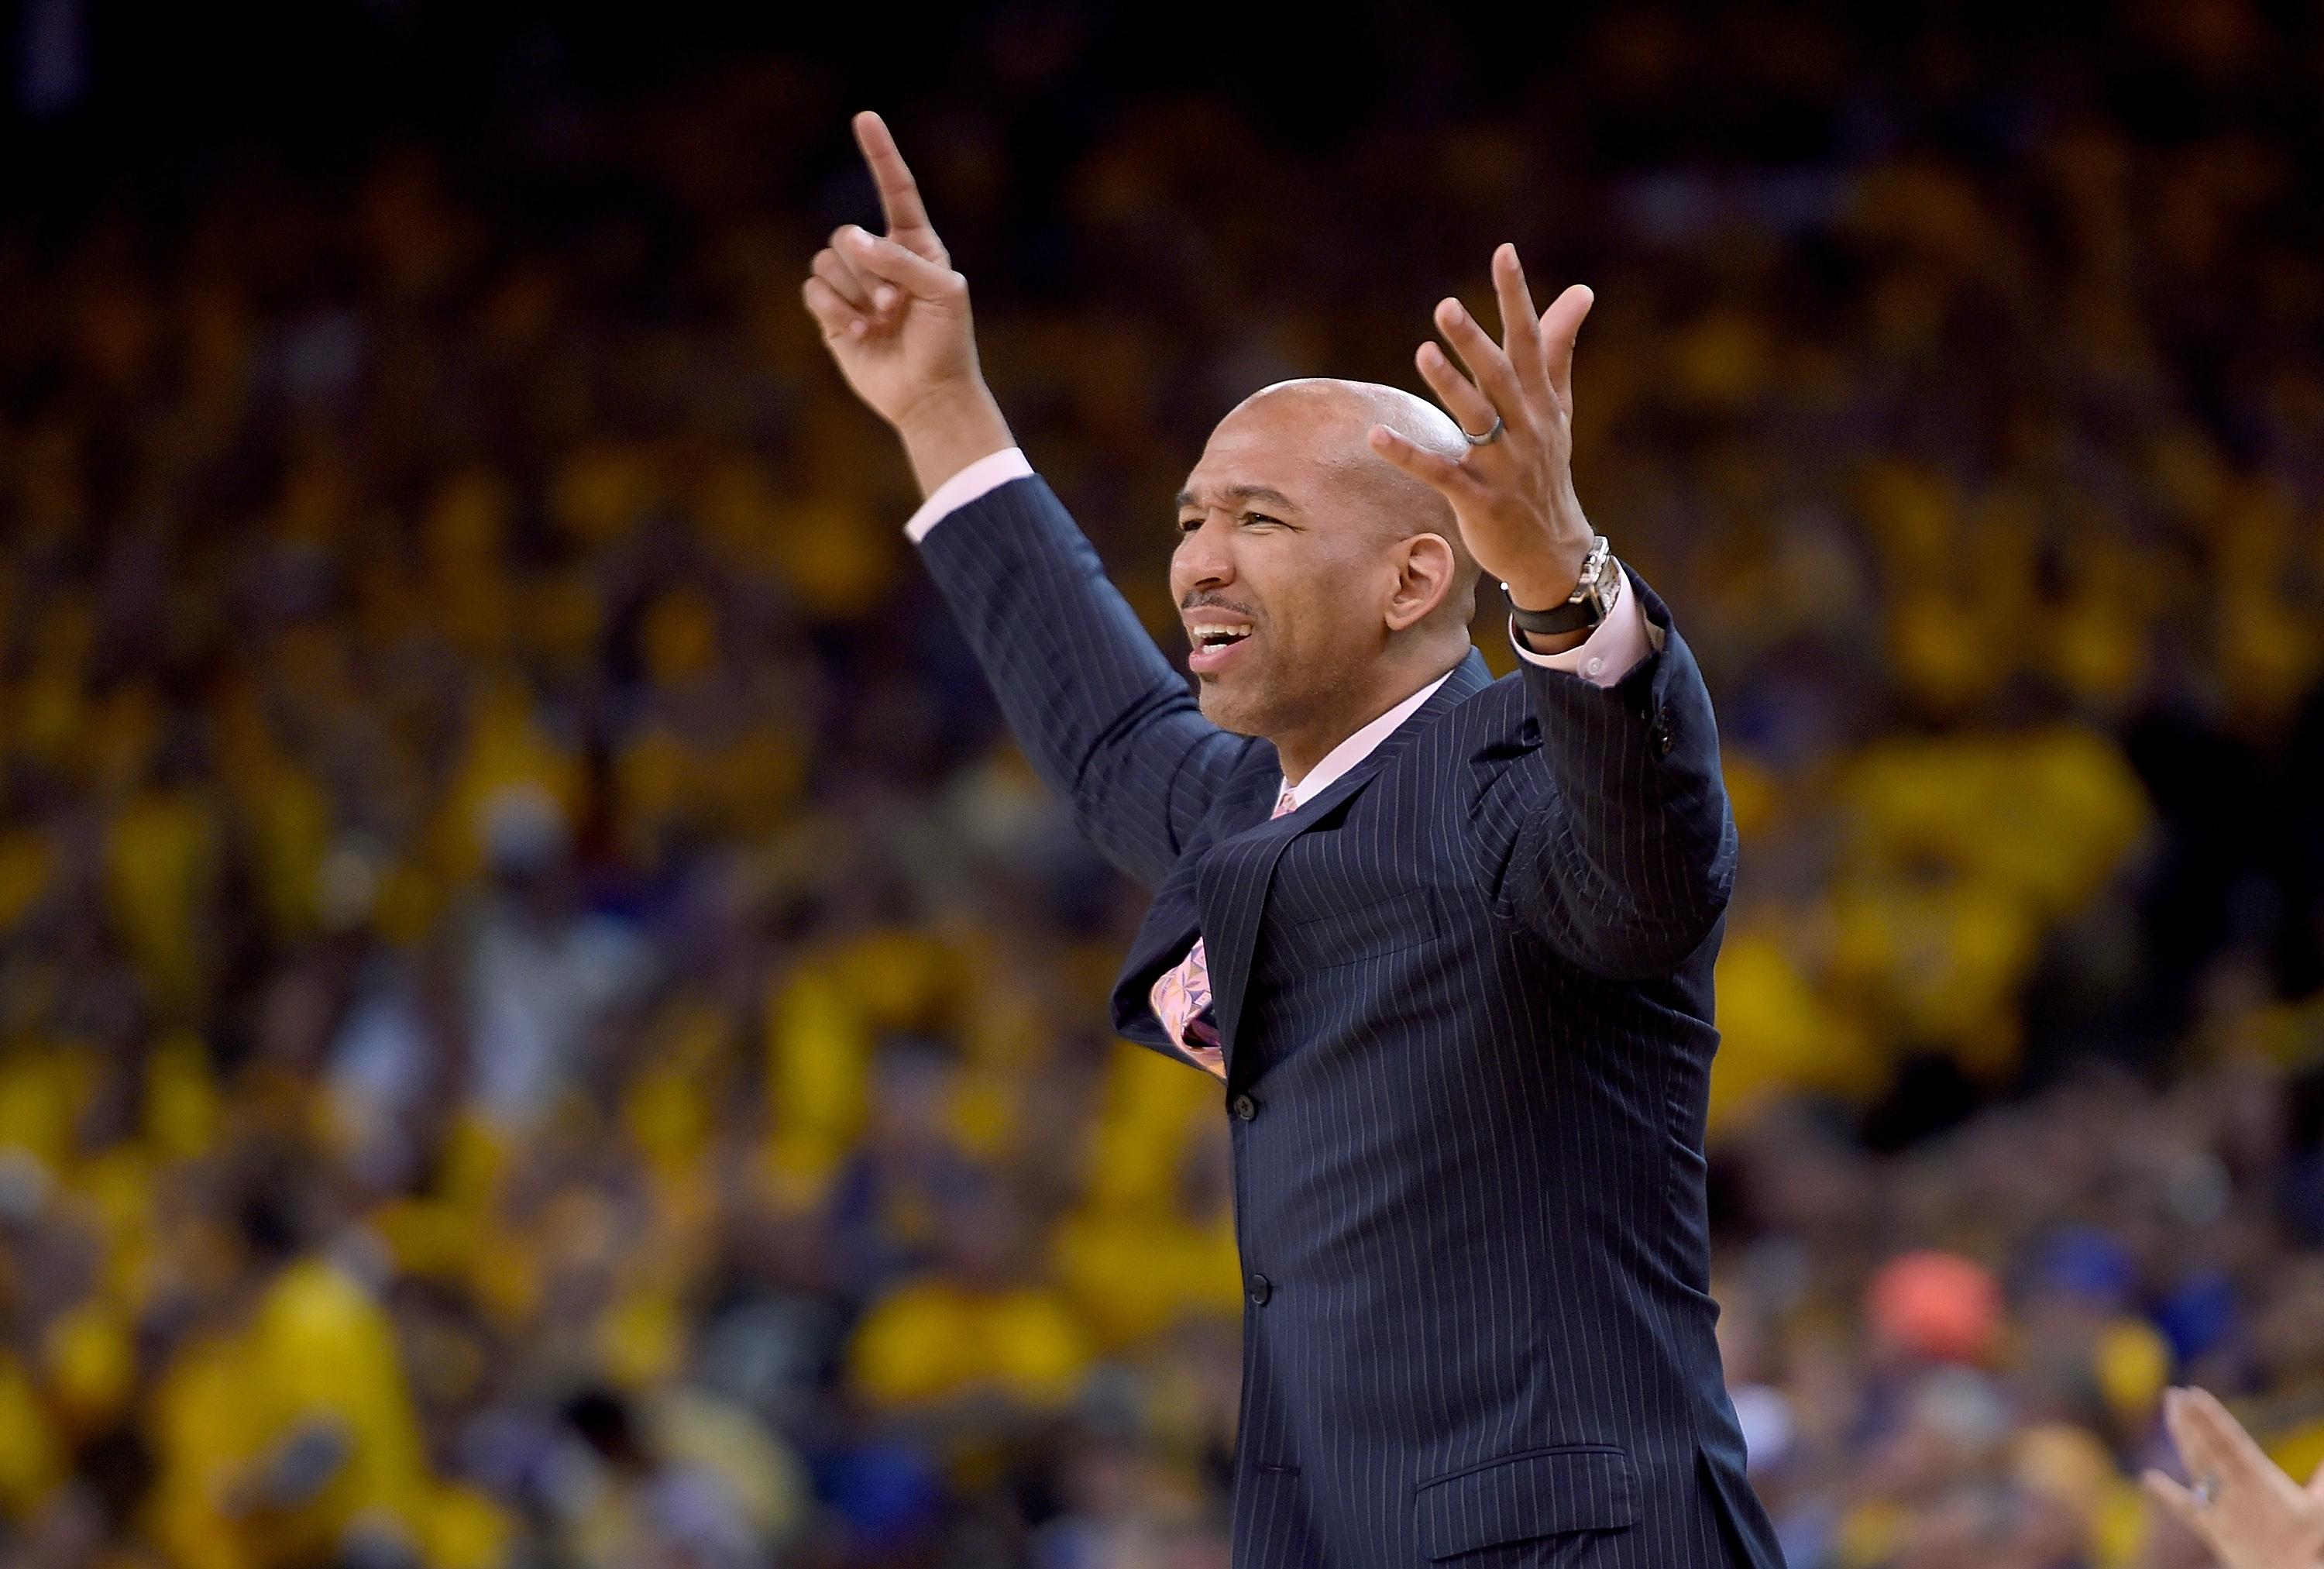 Pelicans coach Monty Williams thinks Oracle Arena's so loud it might be illegal